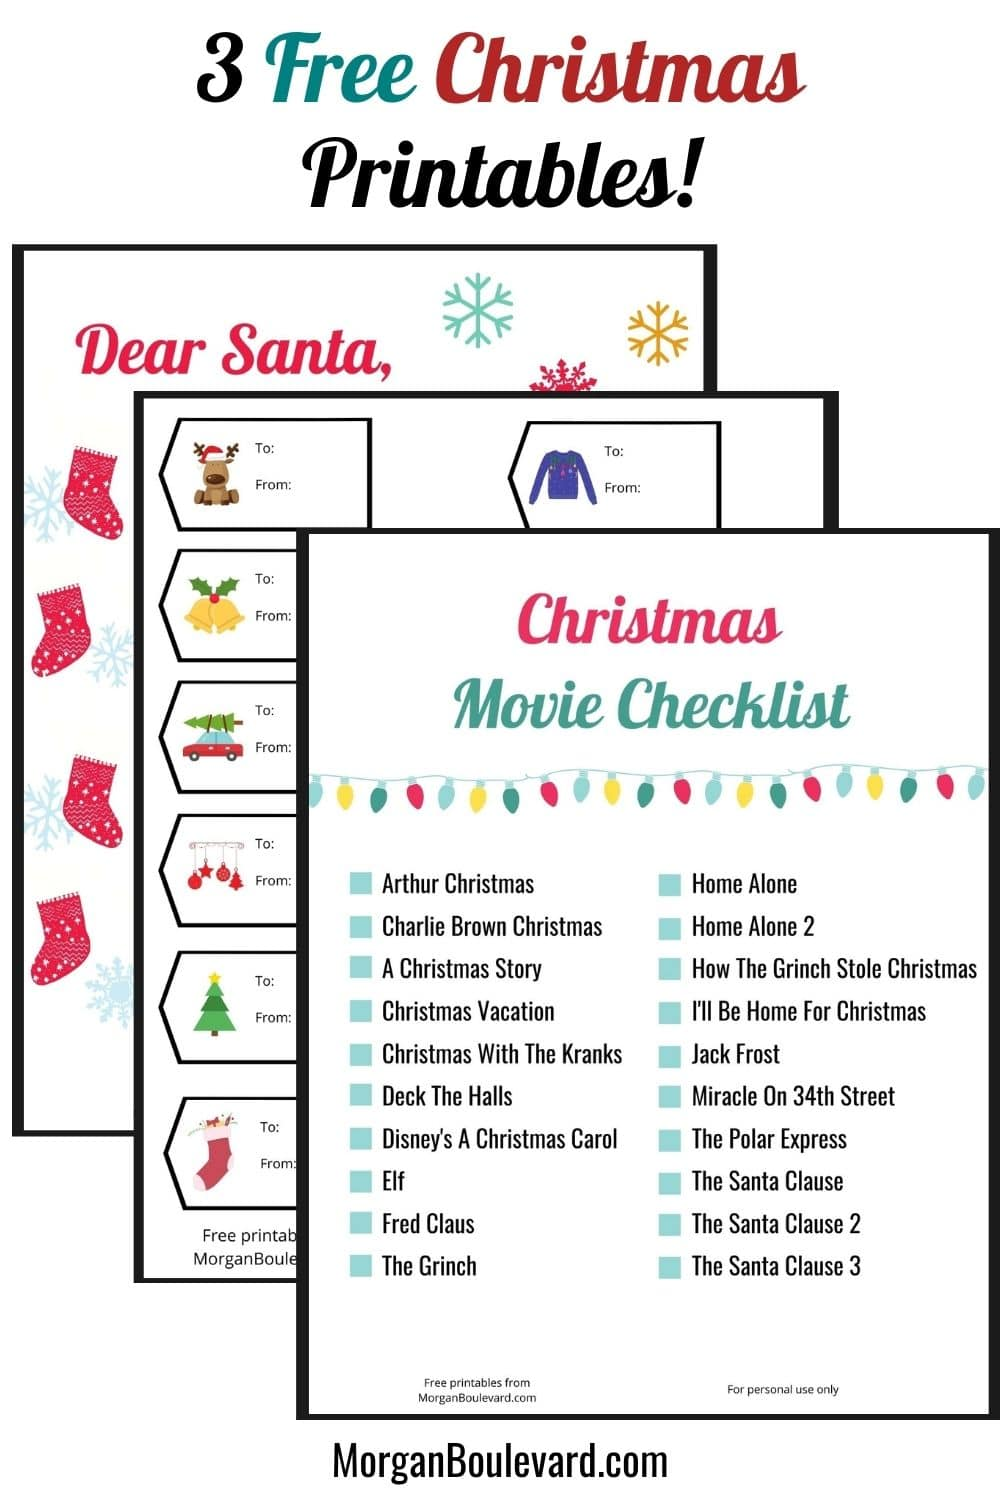 3 Free Christmas Printables Every Mom Should Have